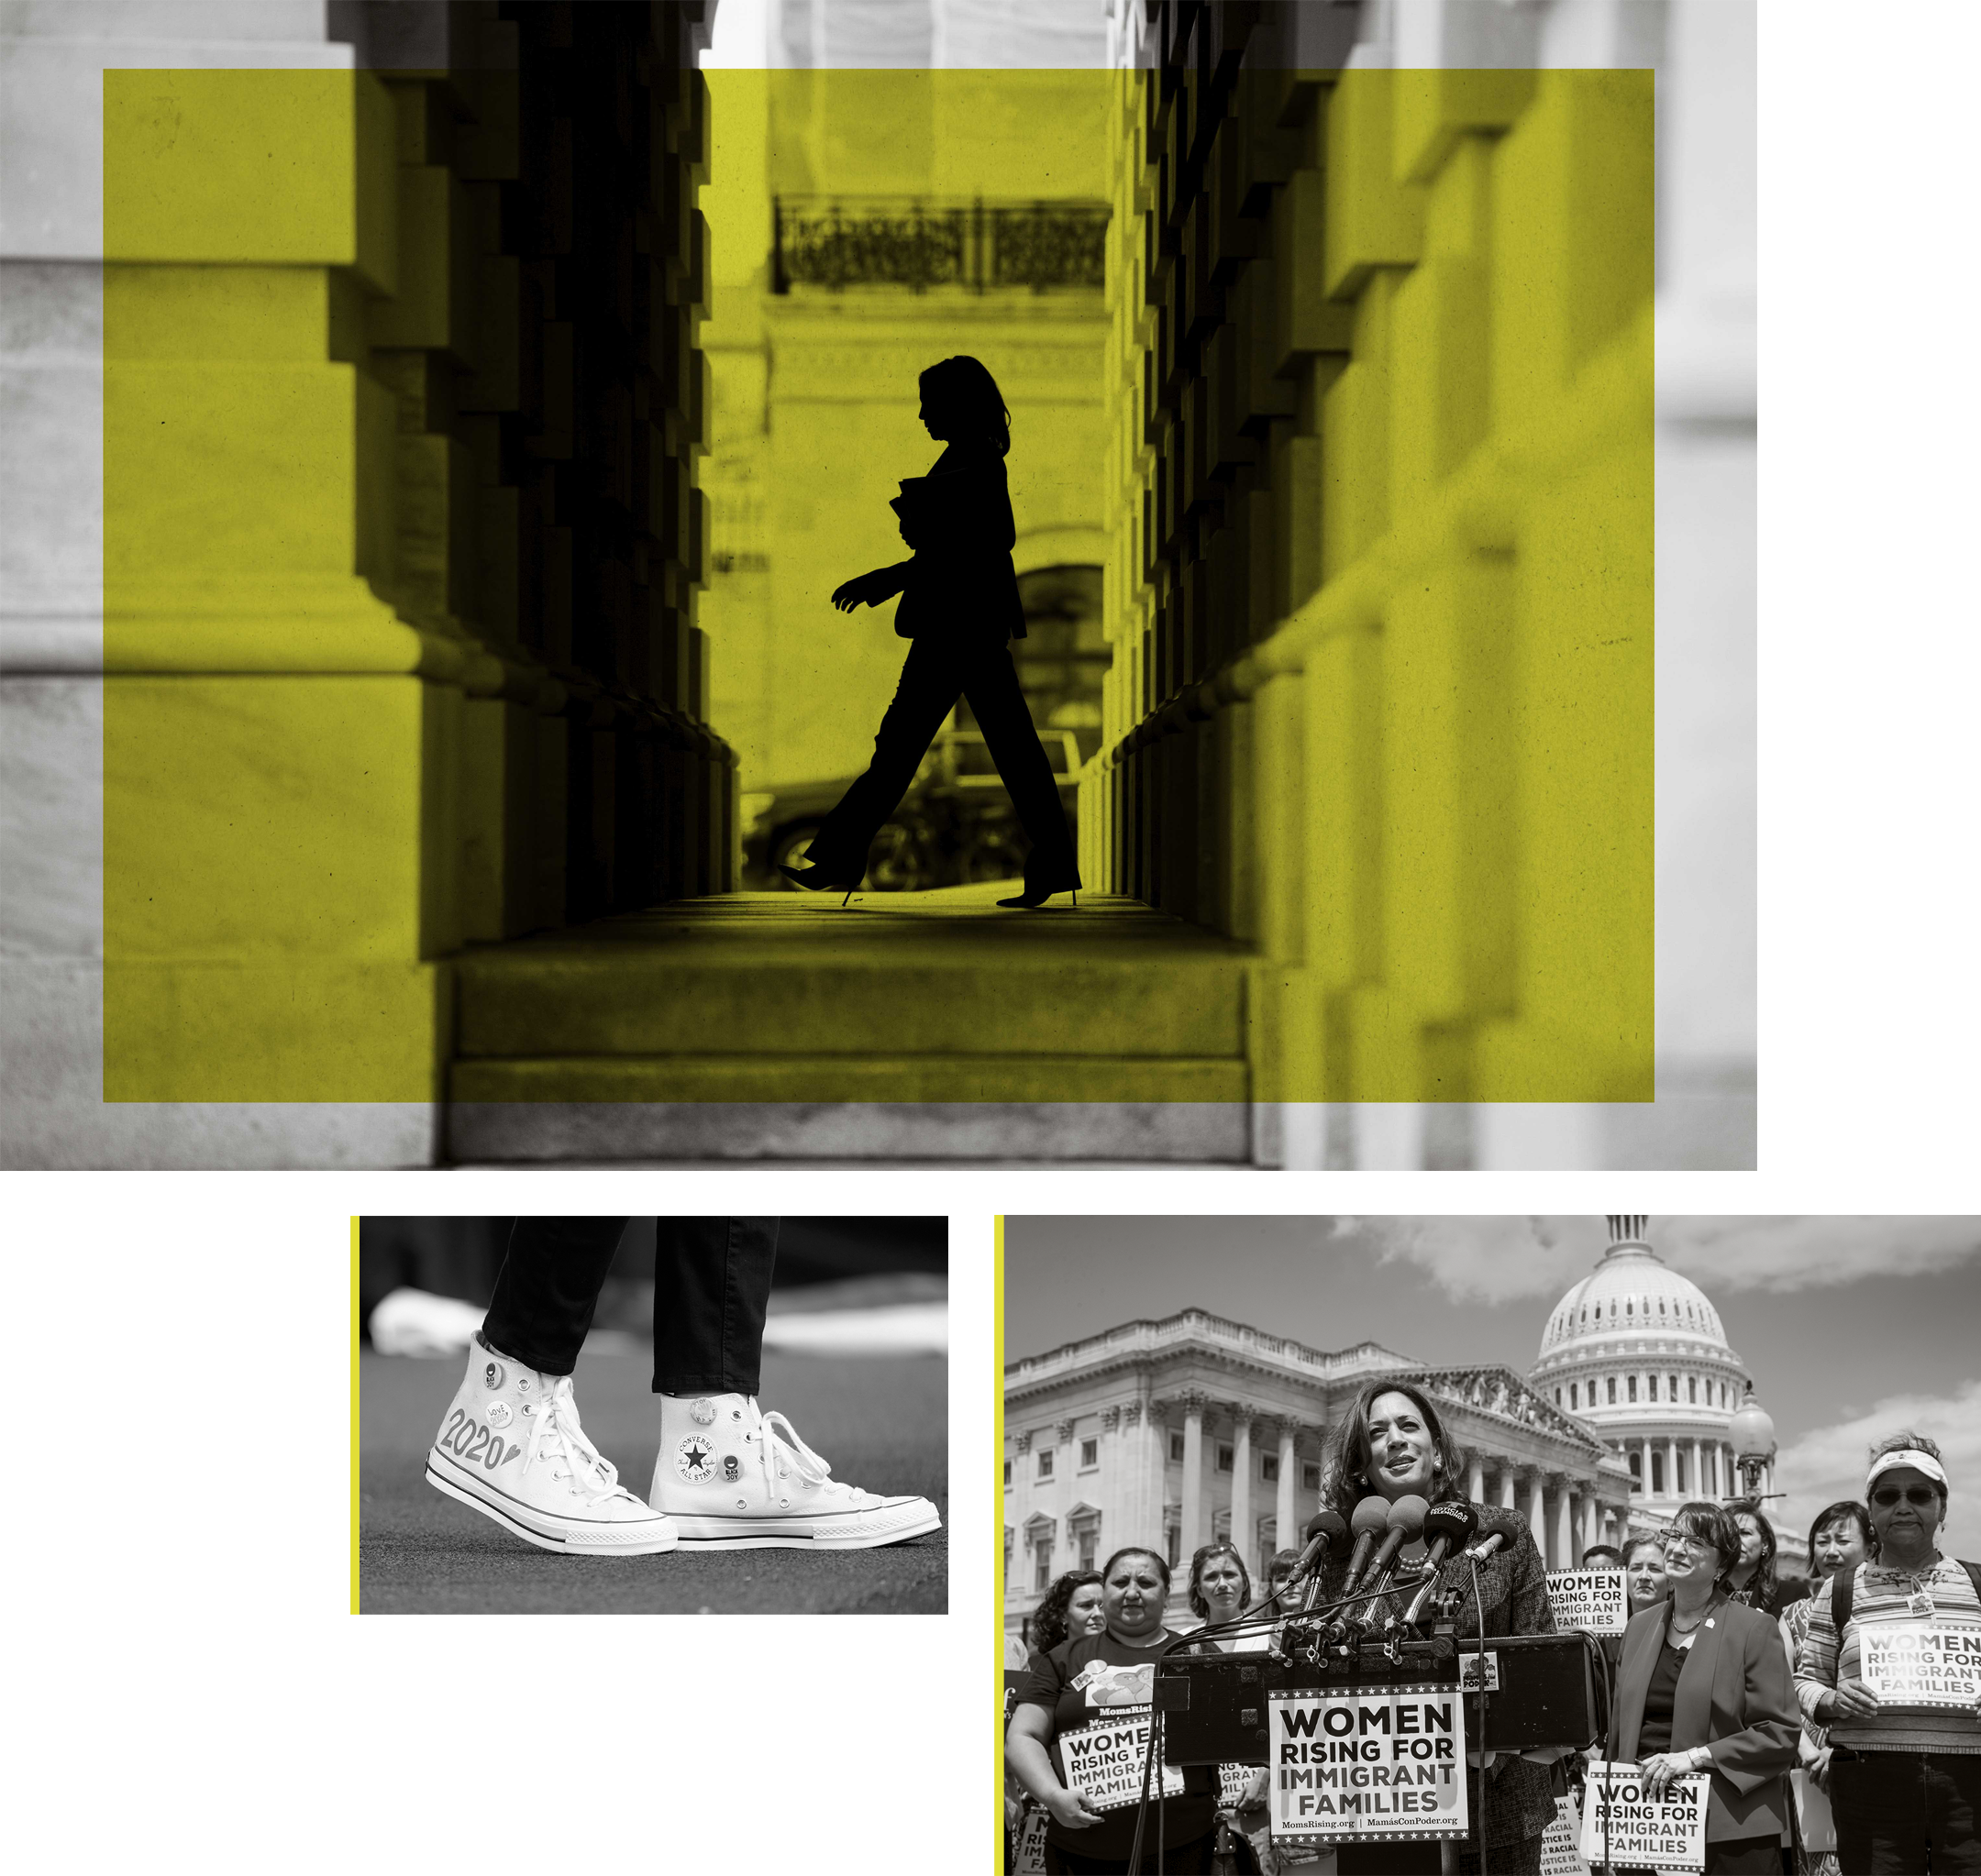 """TOP: Then-Sen. Kamala Harris leaves the Capitol after the conclusion of the Senate impeachment trial proceedings Feb. 3, 2020. LEFT: Harris' Converse high-top sneakers in 2020 feature """"Black Joy"""" buttons. RIGHT: Harris joins a women's advocacy group, MomsRising, to protest against separating children from their parents along the border in 2018."""